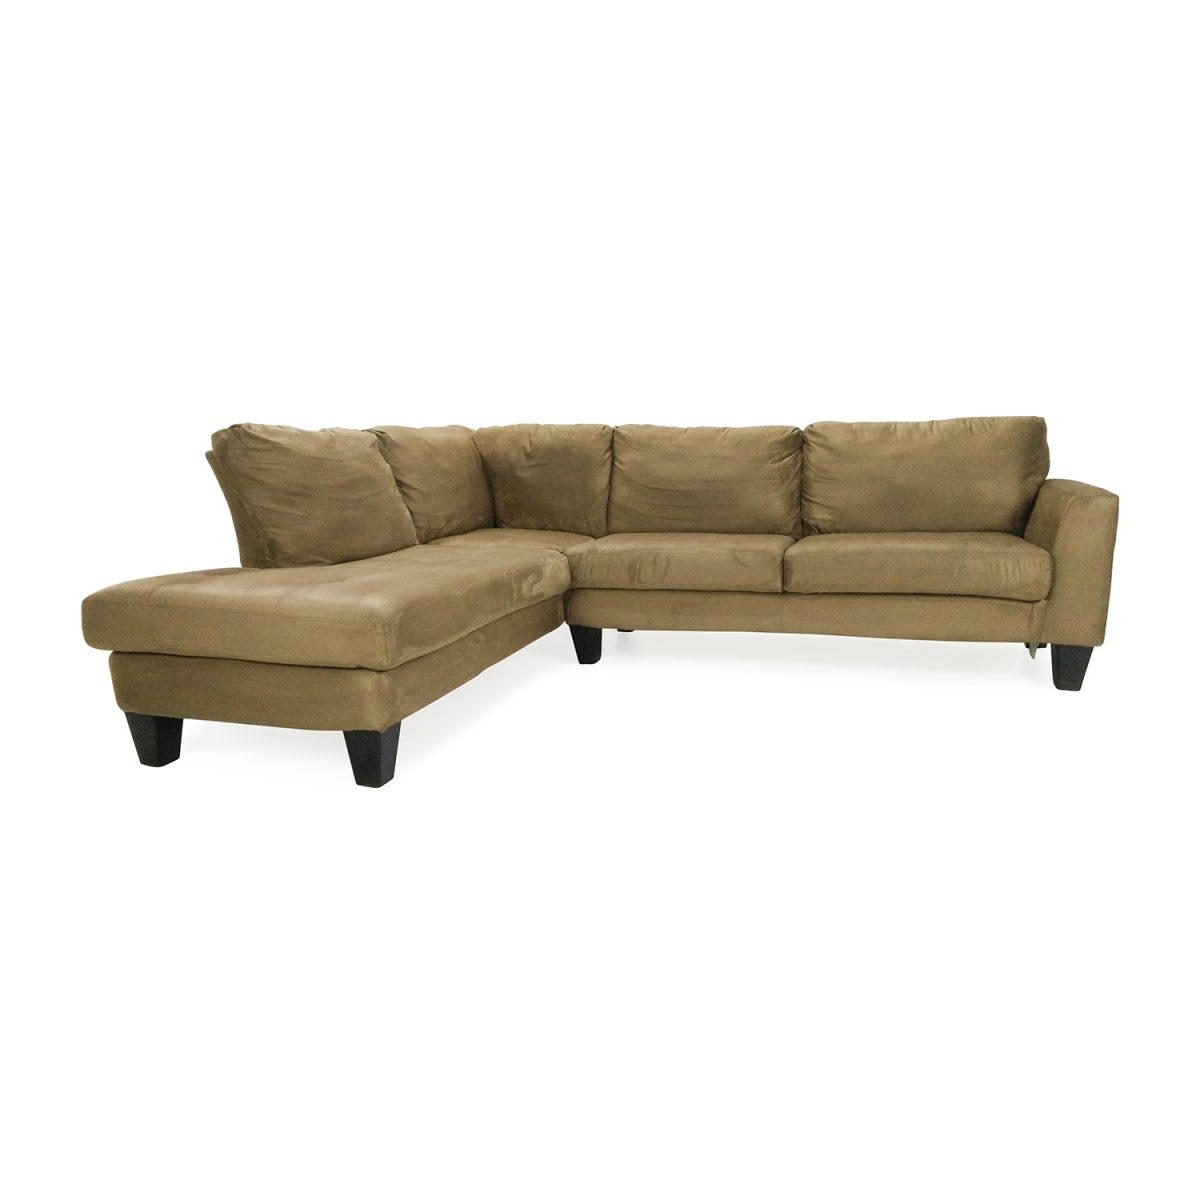 Jennifer Convertibles Sectional Sofas | Howexgirlback with regard to Jennifer Convertibles Sectional Sofas (Image 7 of 10)